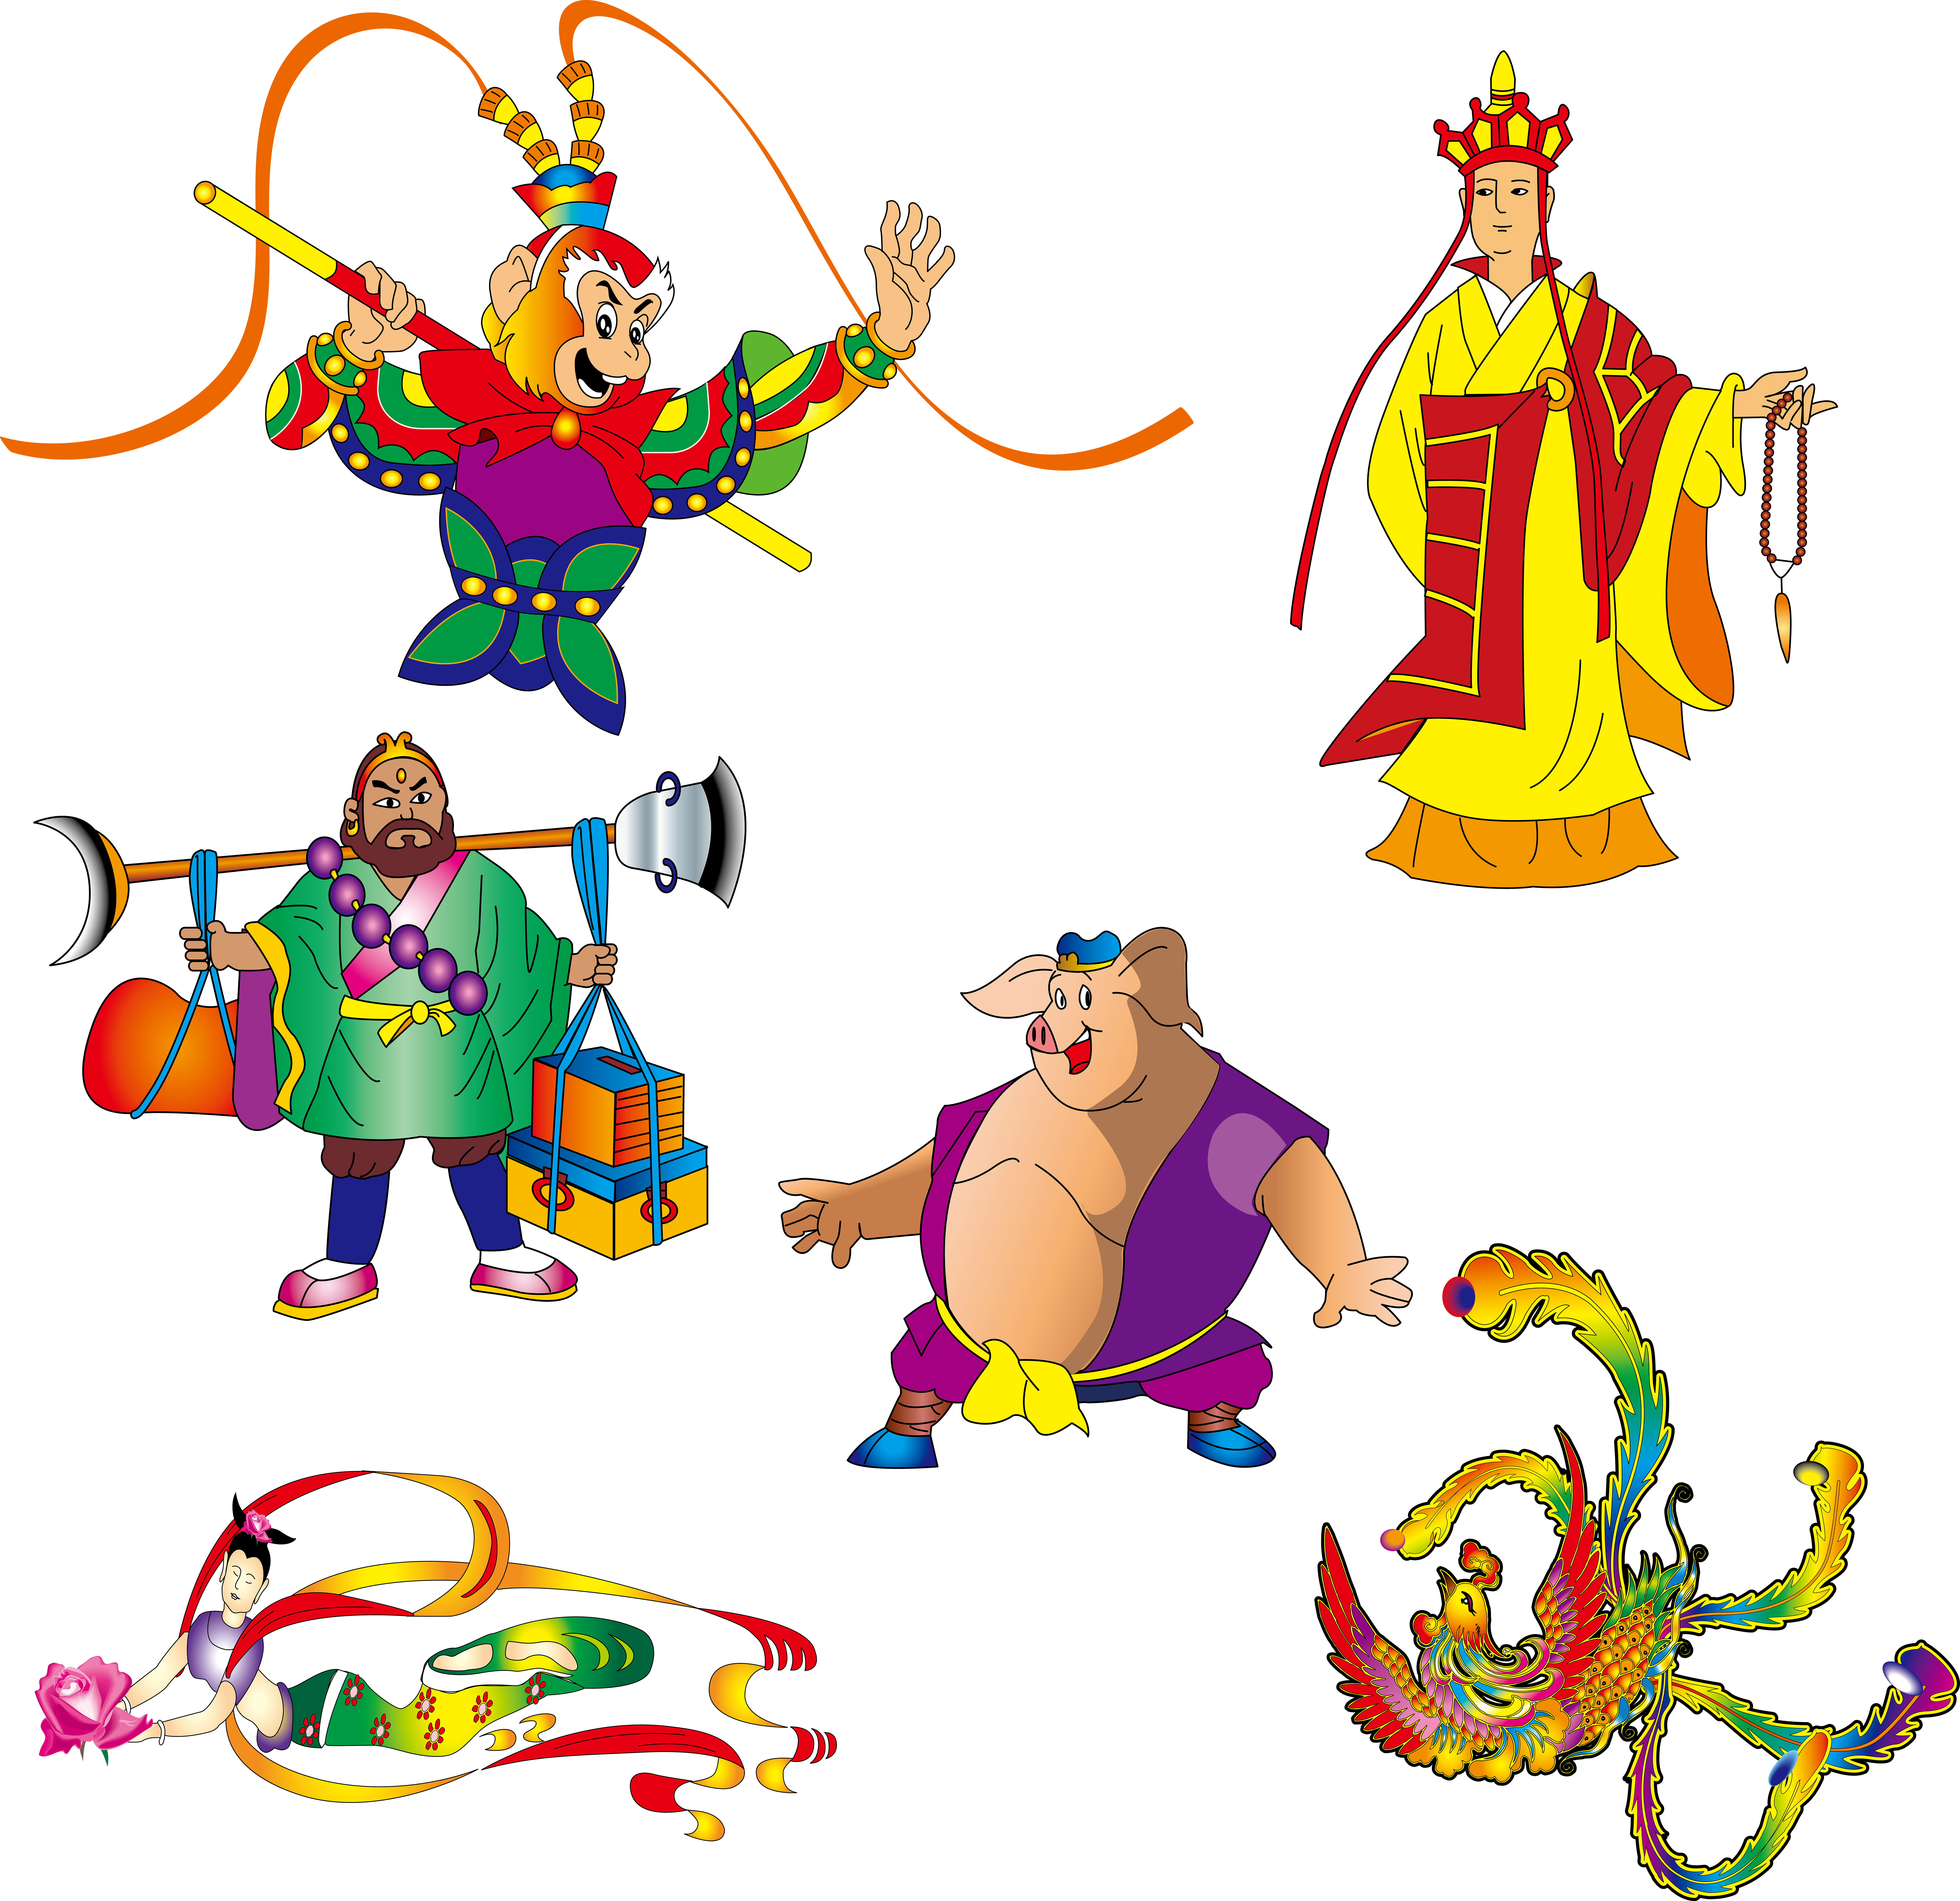 Clipart birthday with sun and sand png library Monkey: Journey to the West Sun Wukong Westward Journey Online II ... png library